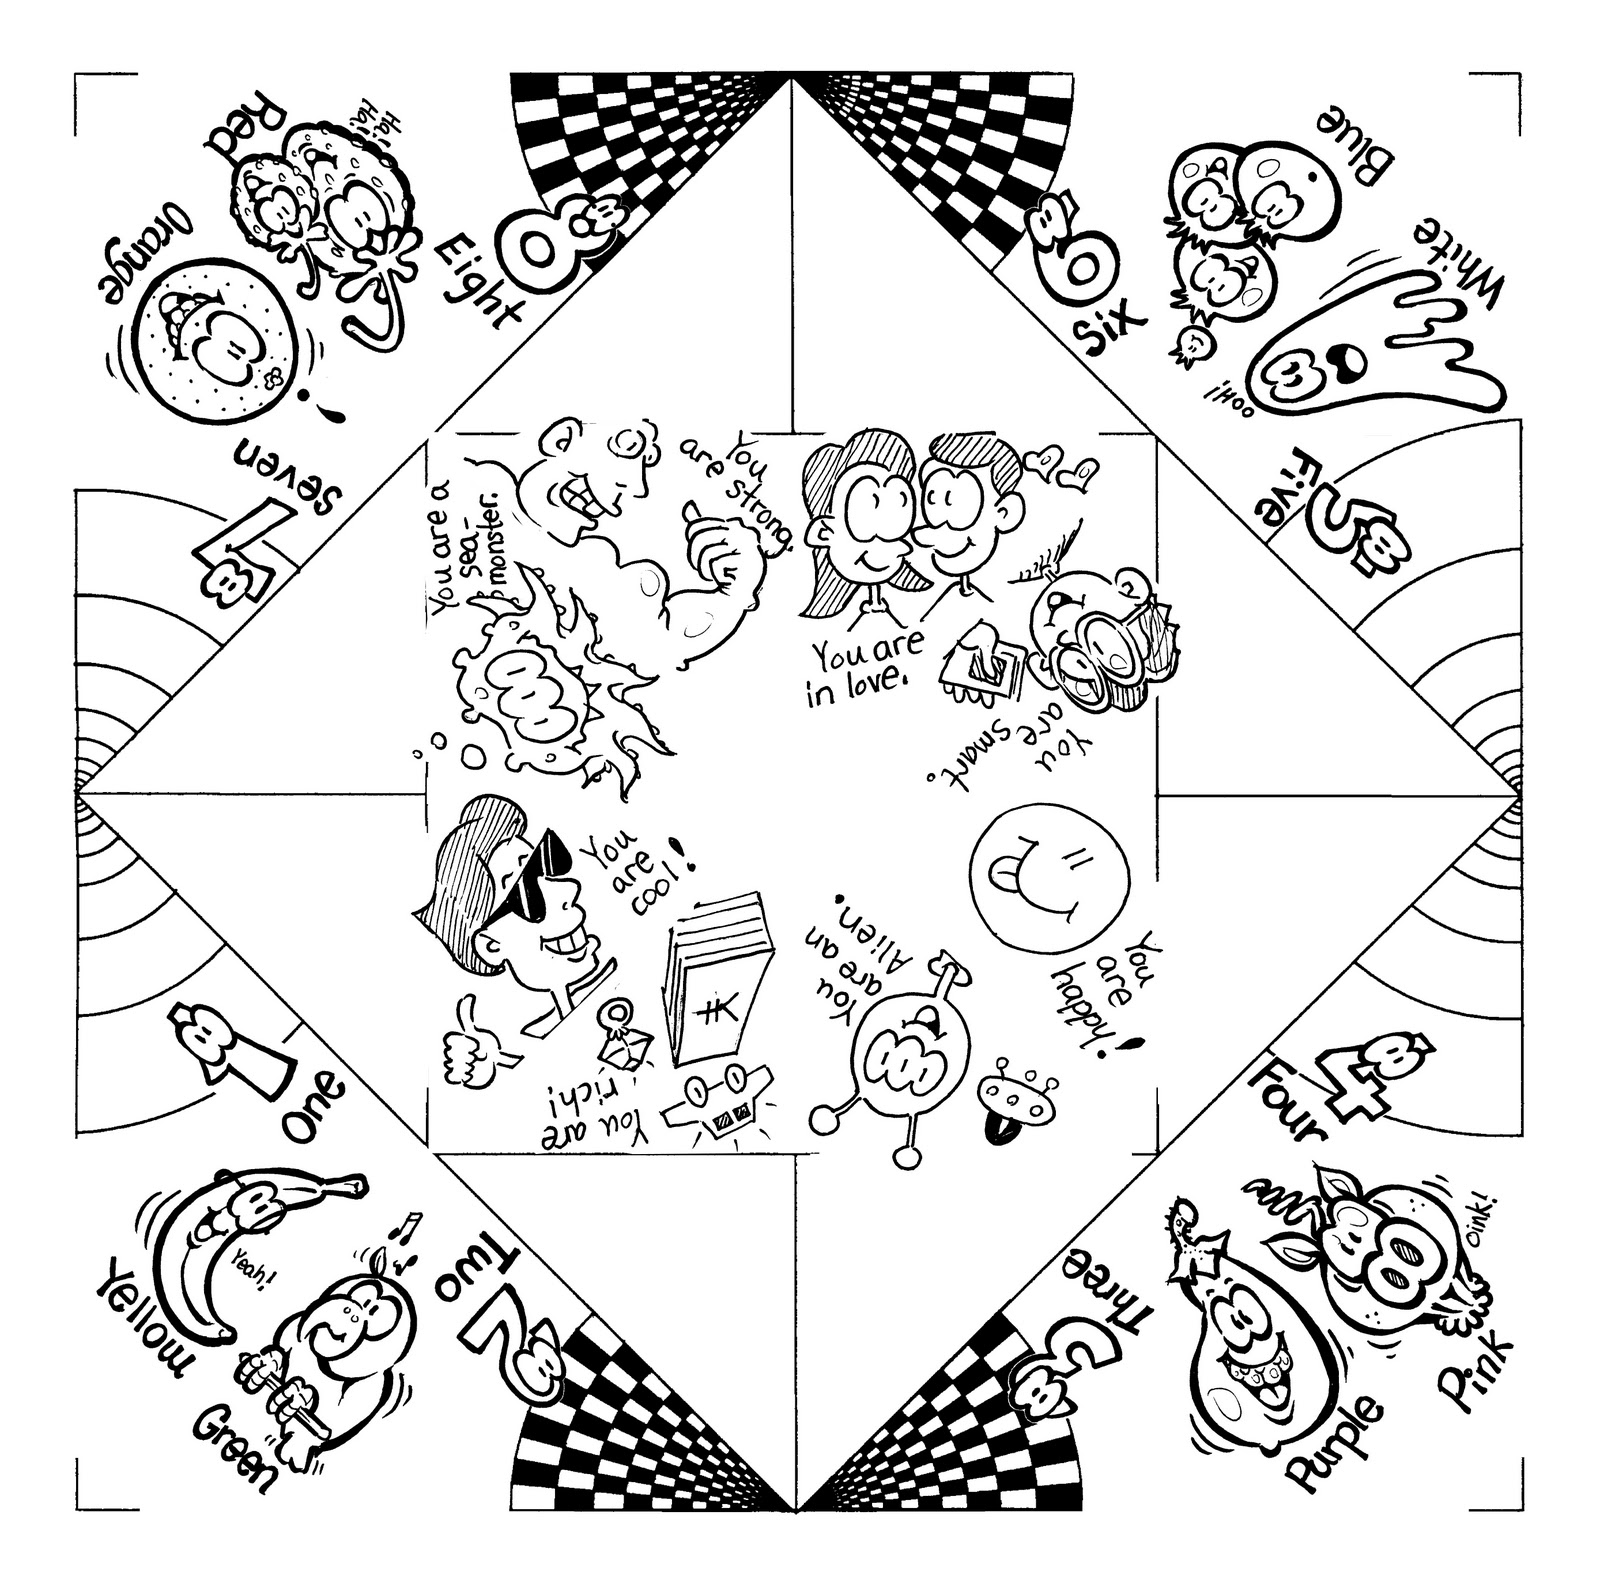 Origami Coloring Pages At Getcolorings